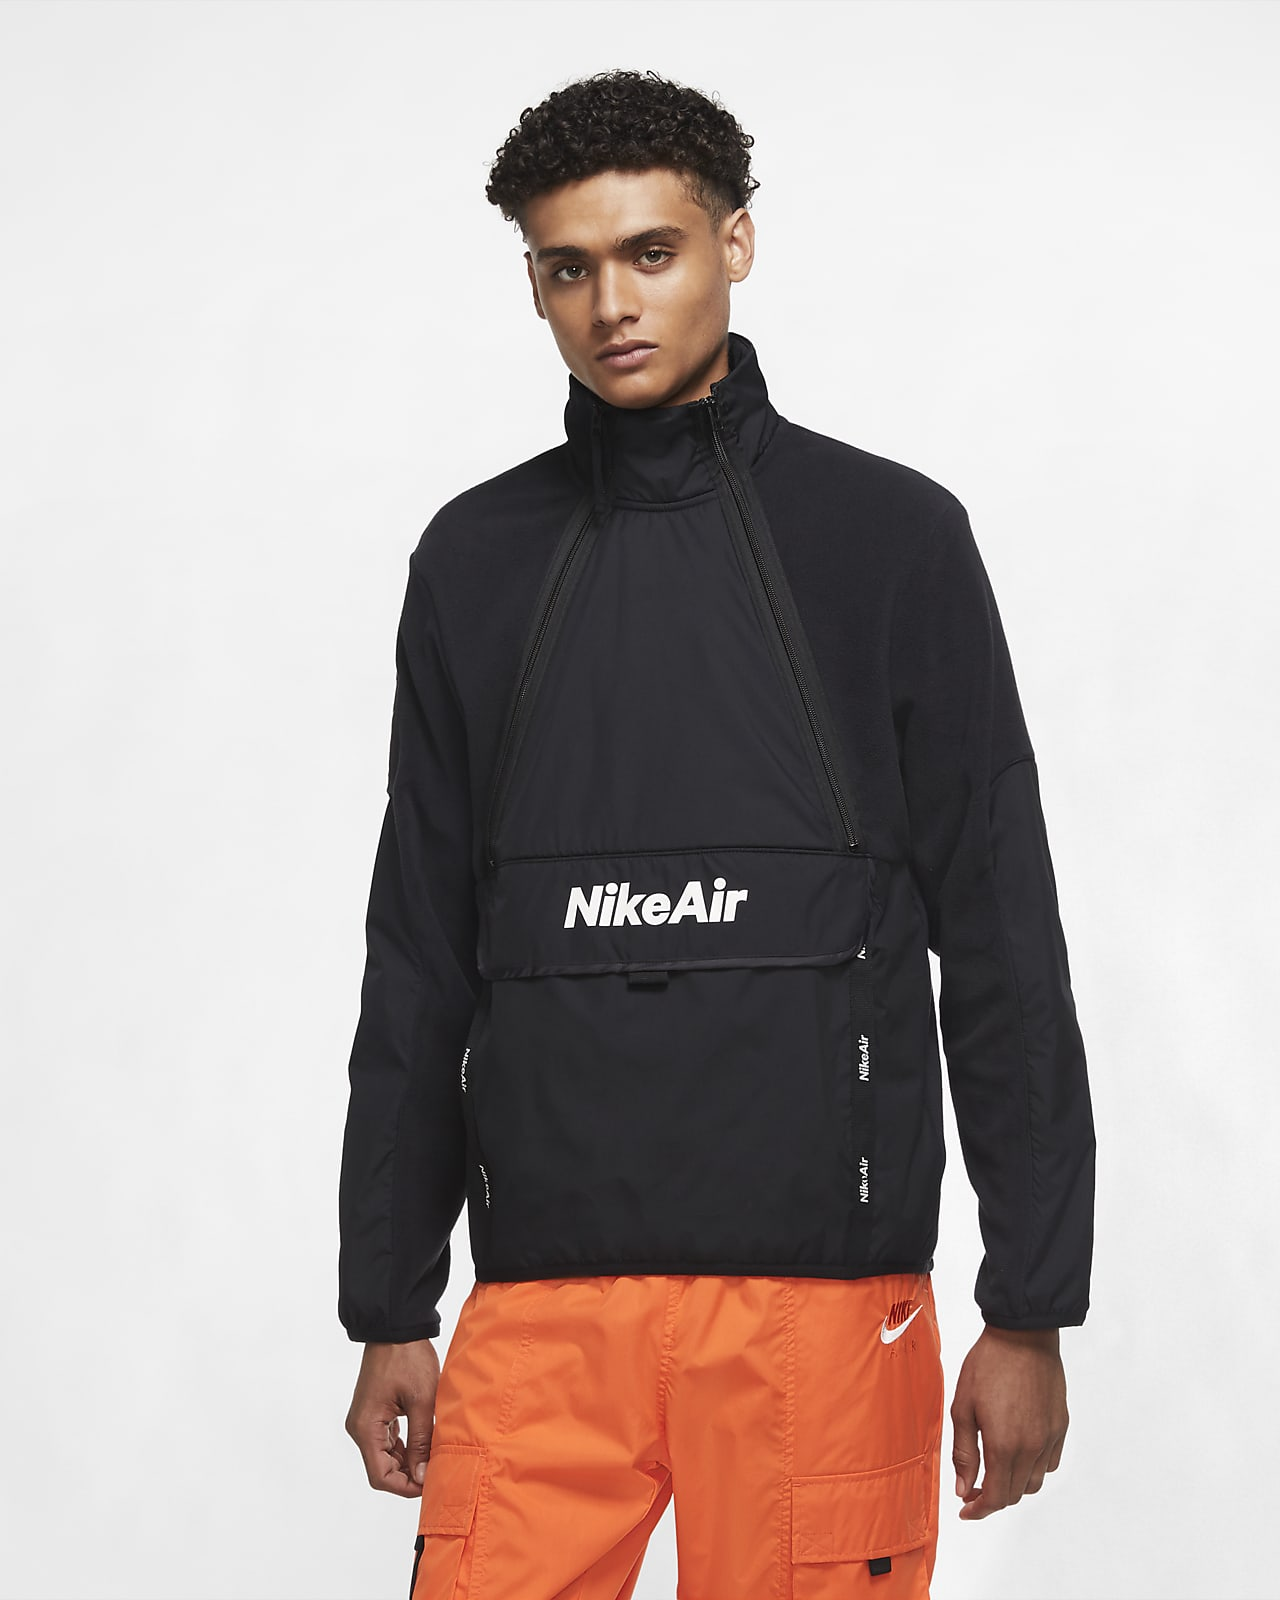 Nike Air Men's Winterized Jacket